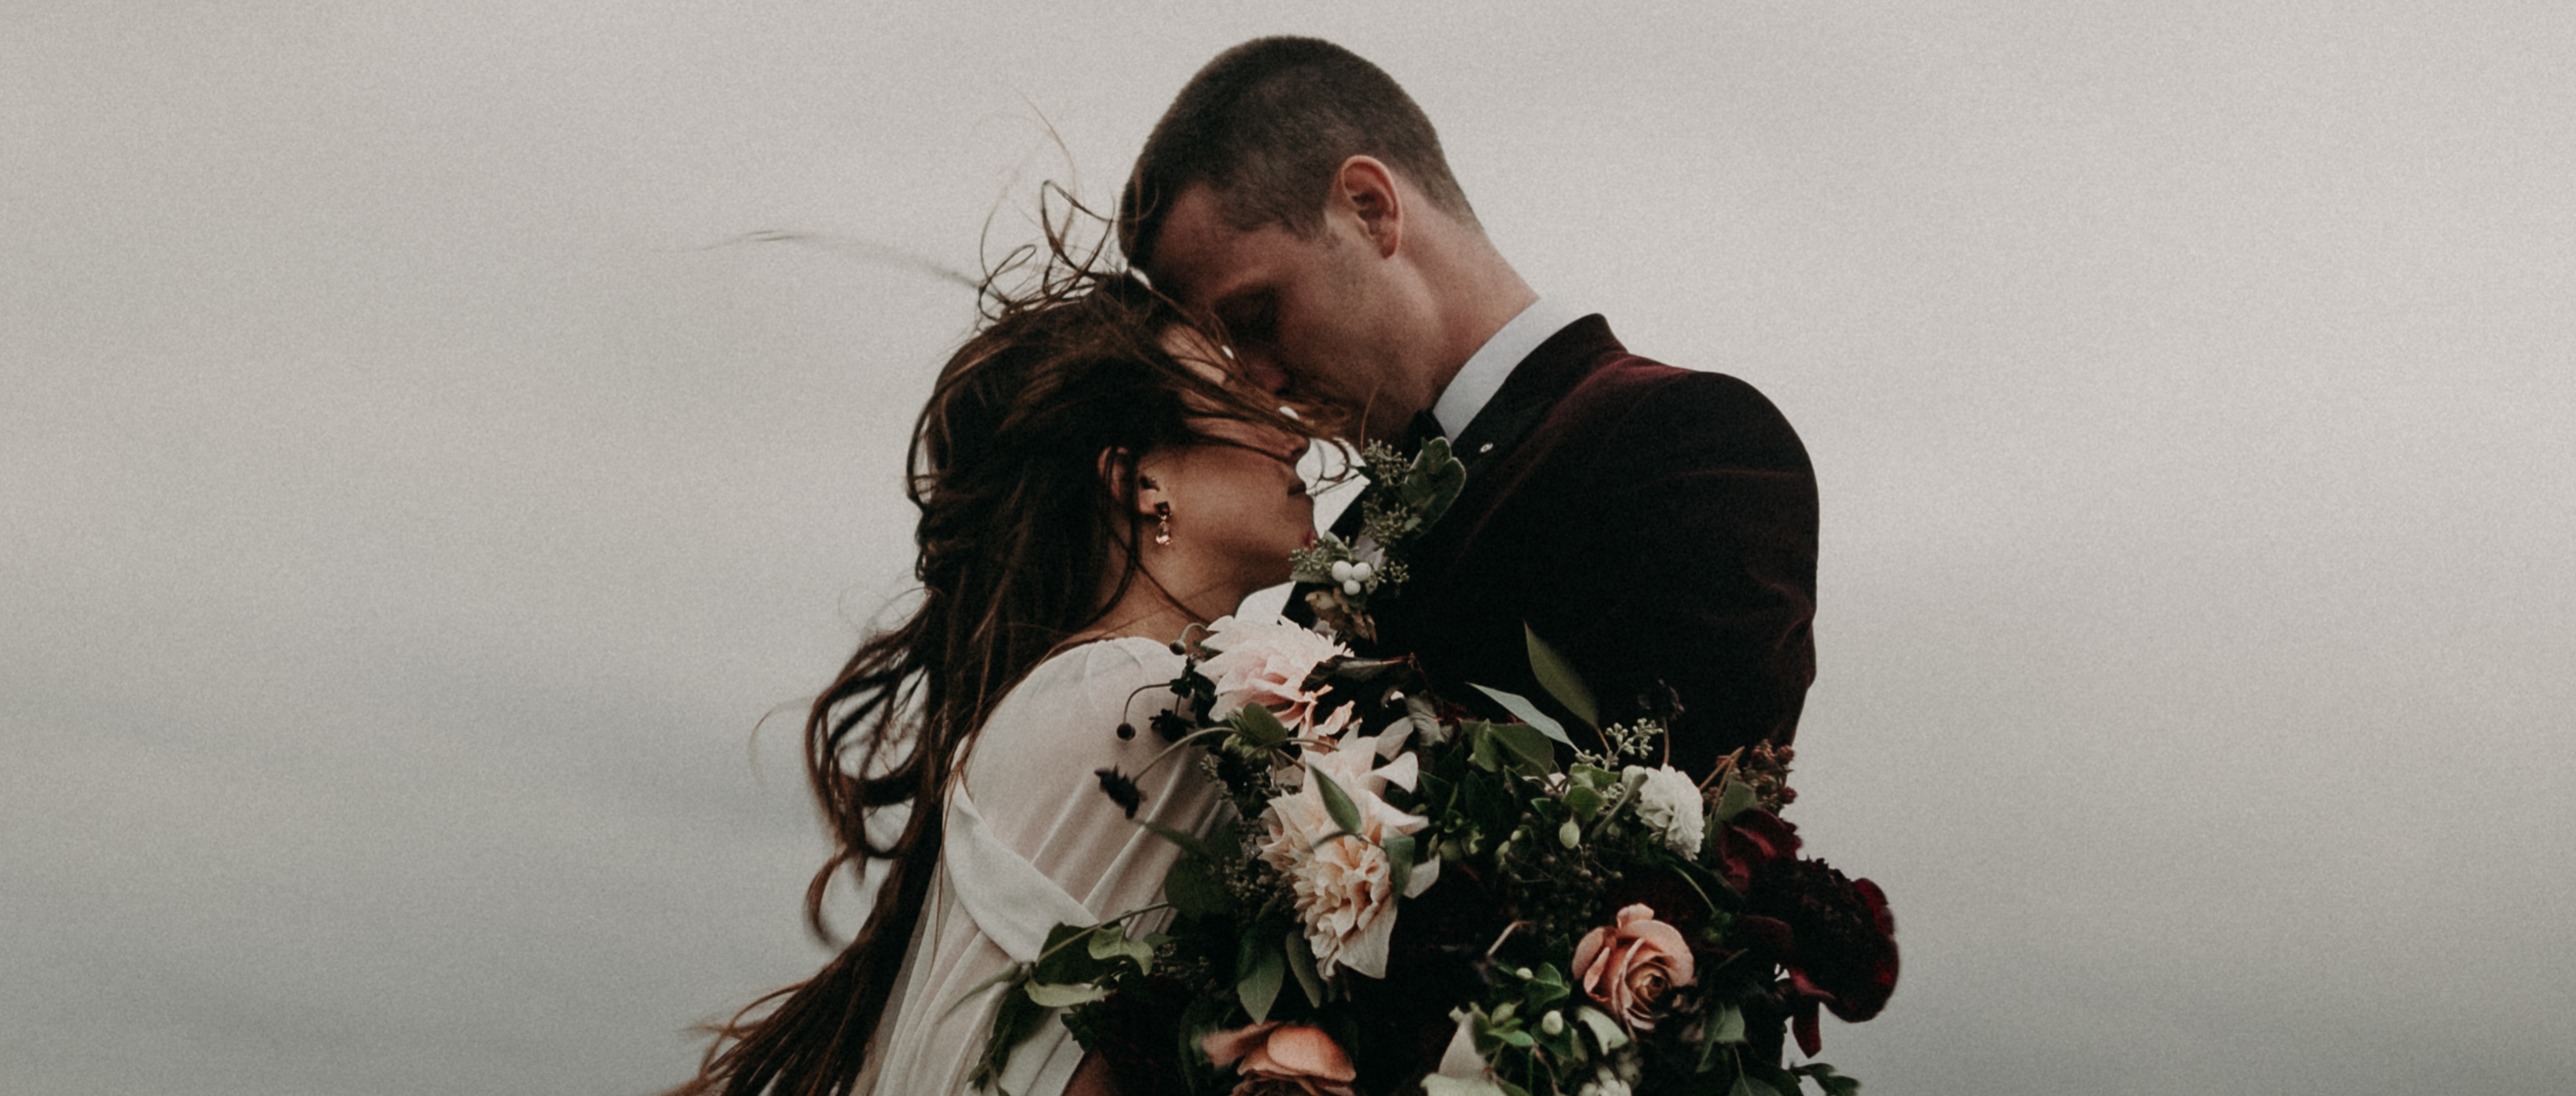 Breann + Ronnie | Doolin, Ireland | Corcomroe Abbey